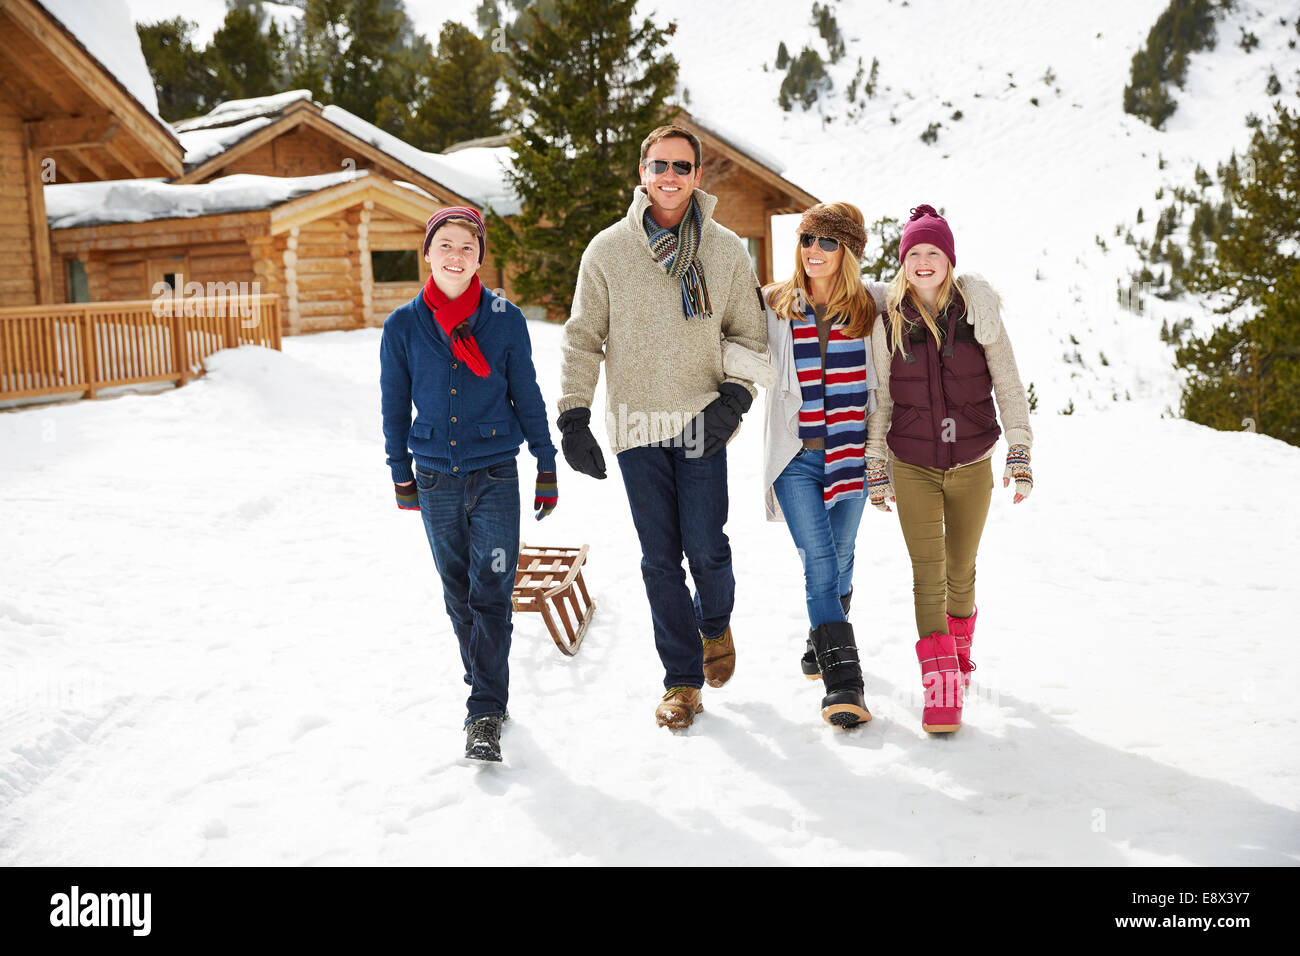 Family walking through snow together - Stock Image